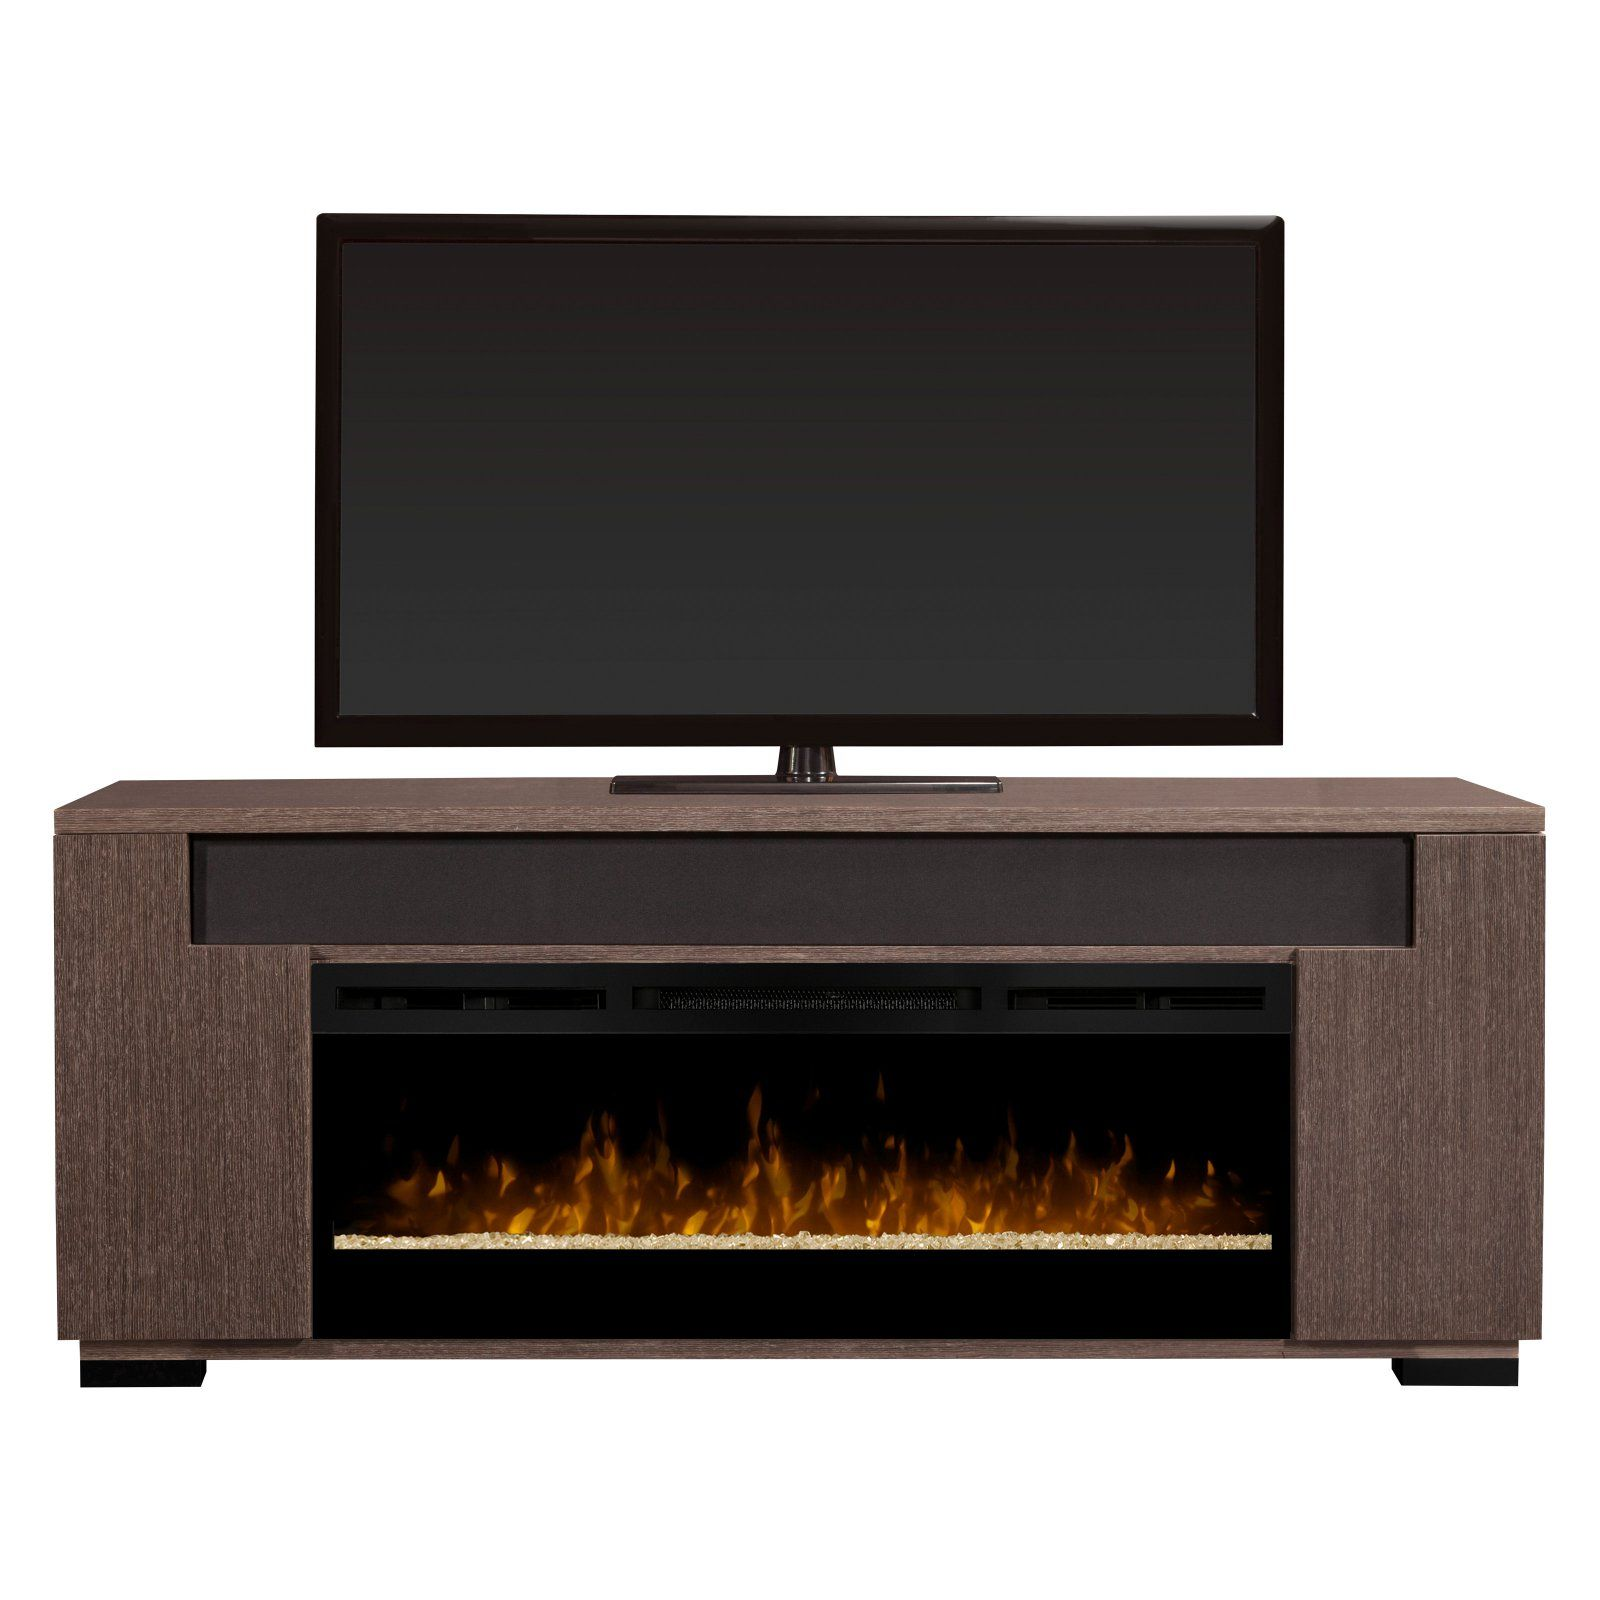 Dimplex Haley Electric Fireplace Tv Stand With Soundbar Rift Gray